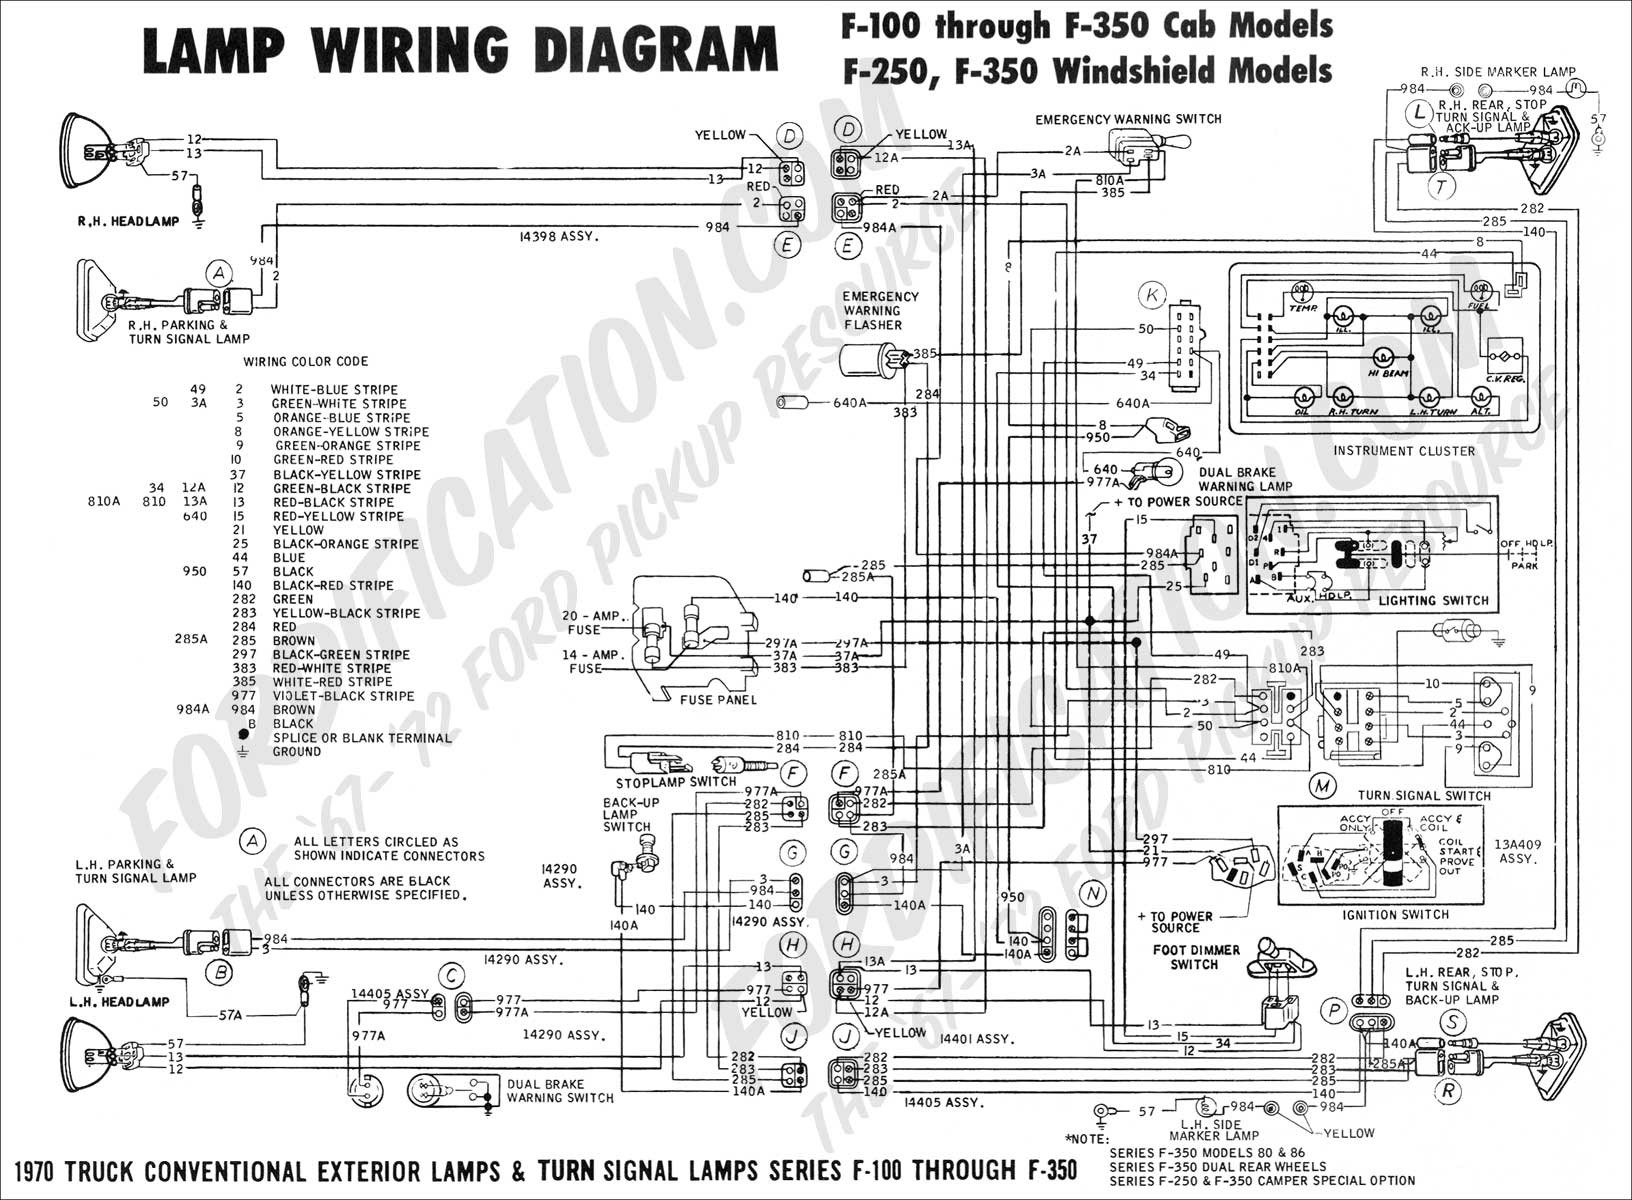 2000 Ford F 250 Trailer Wiring Harness Diagram 87 Ford F250 Wiring